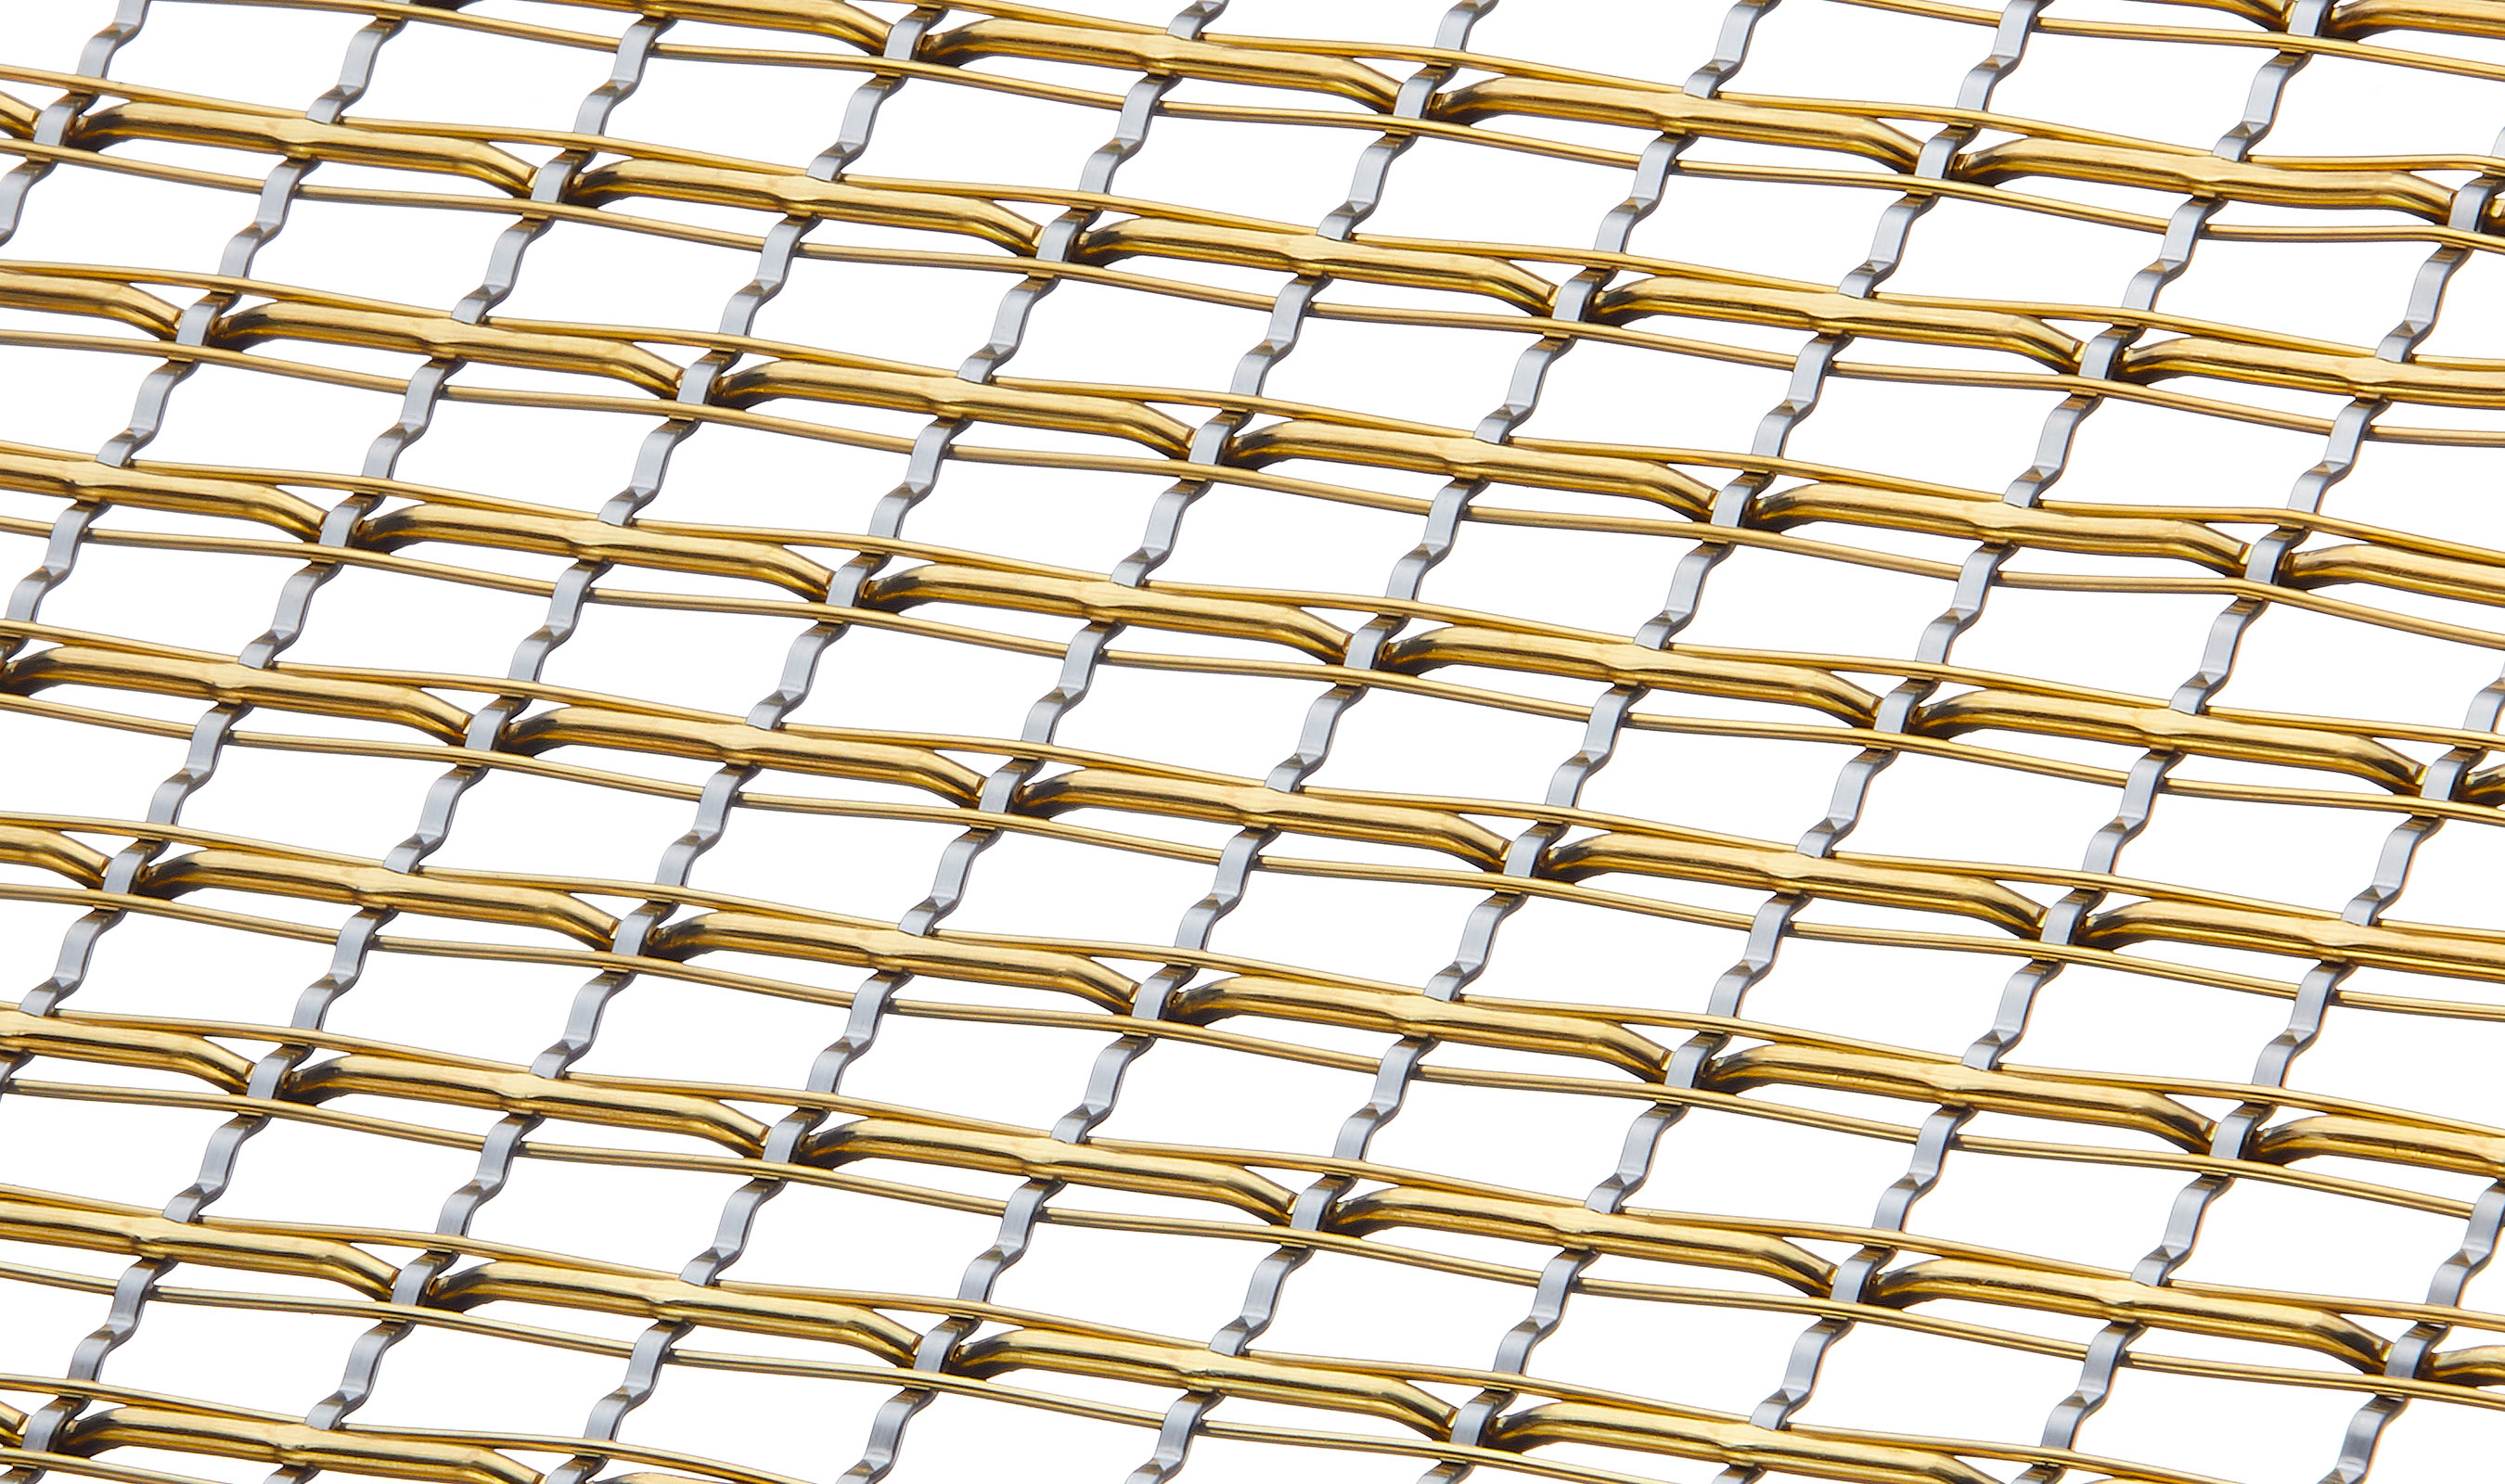 SJD-7 Stainless Steel and Brass wire mesh pattern